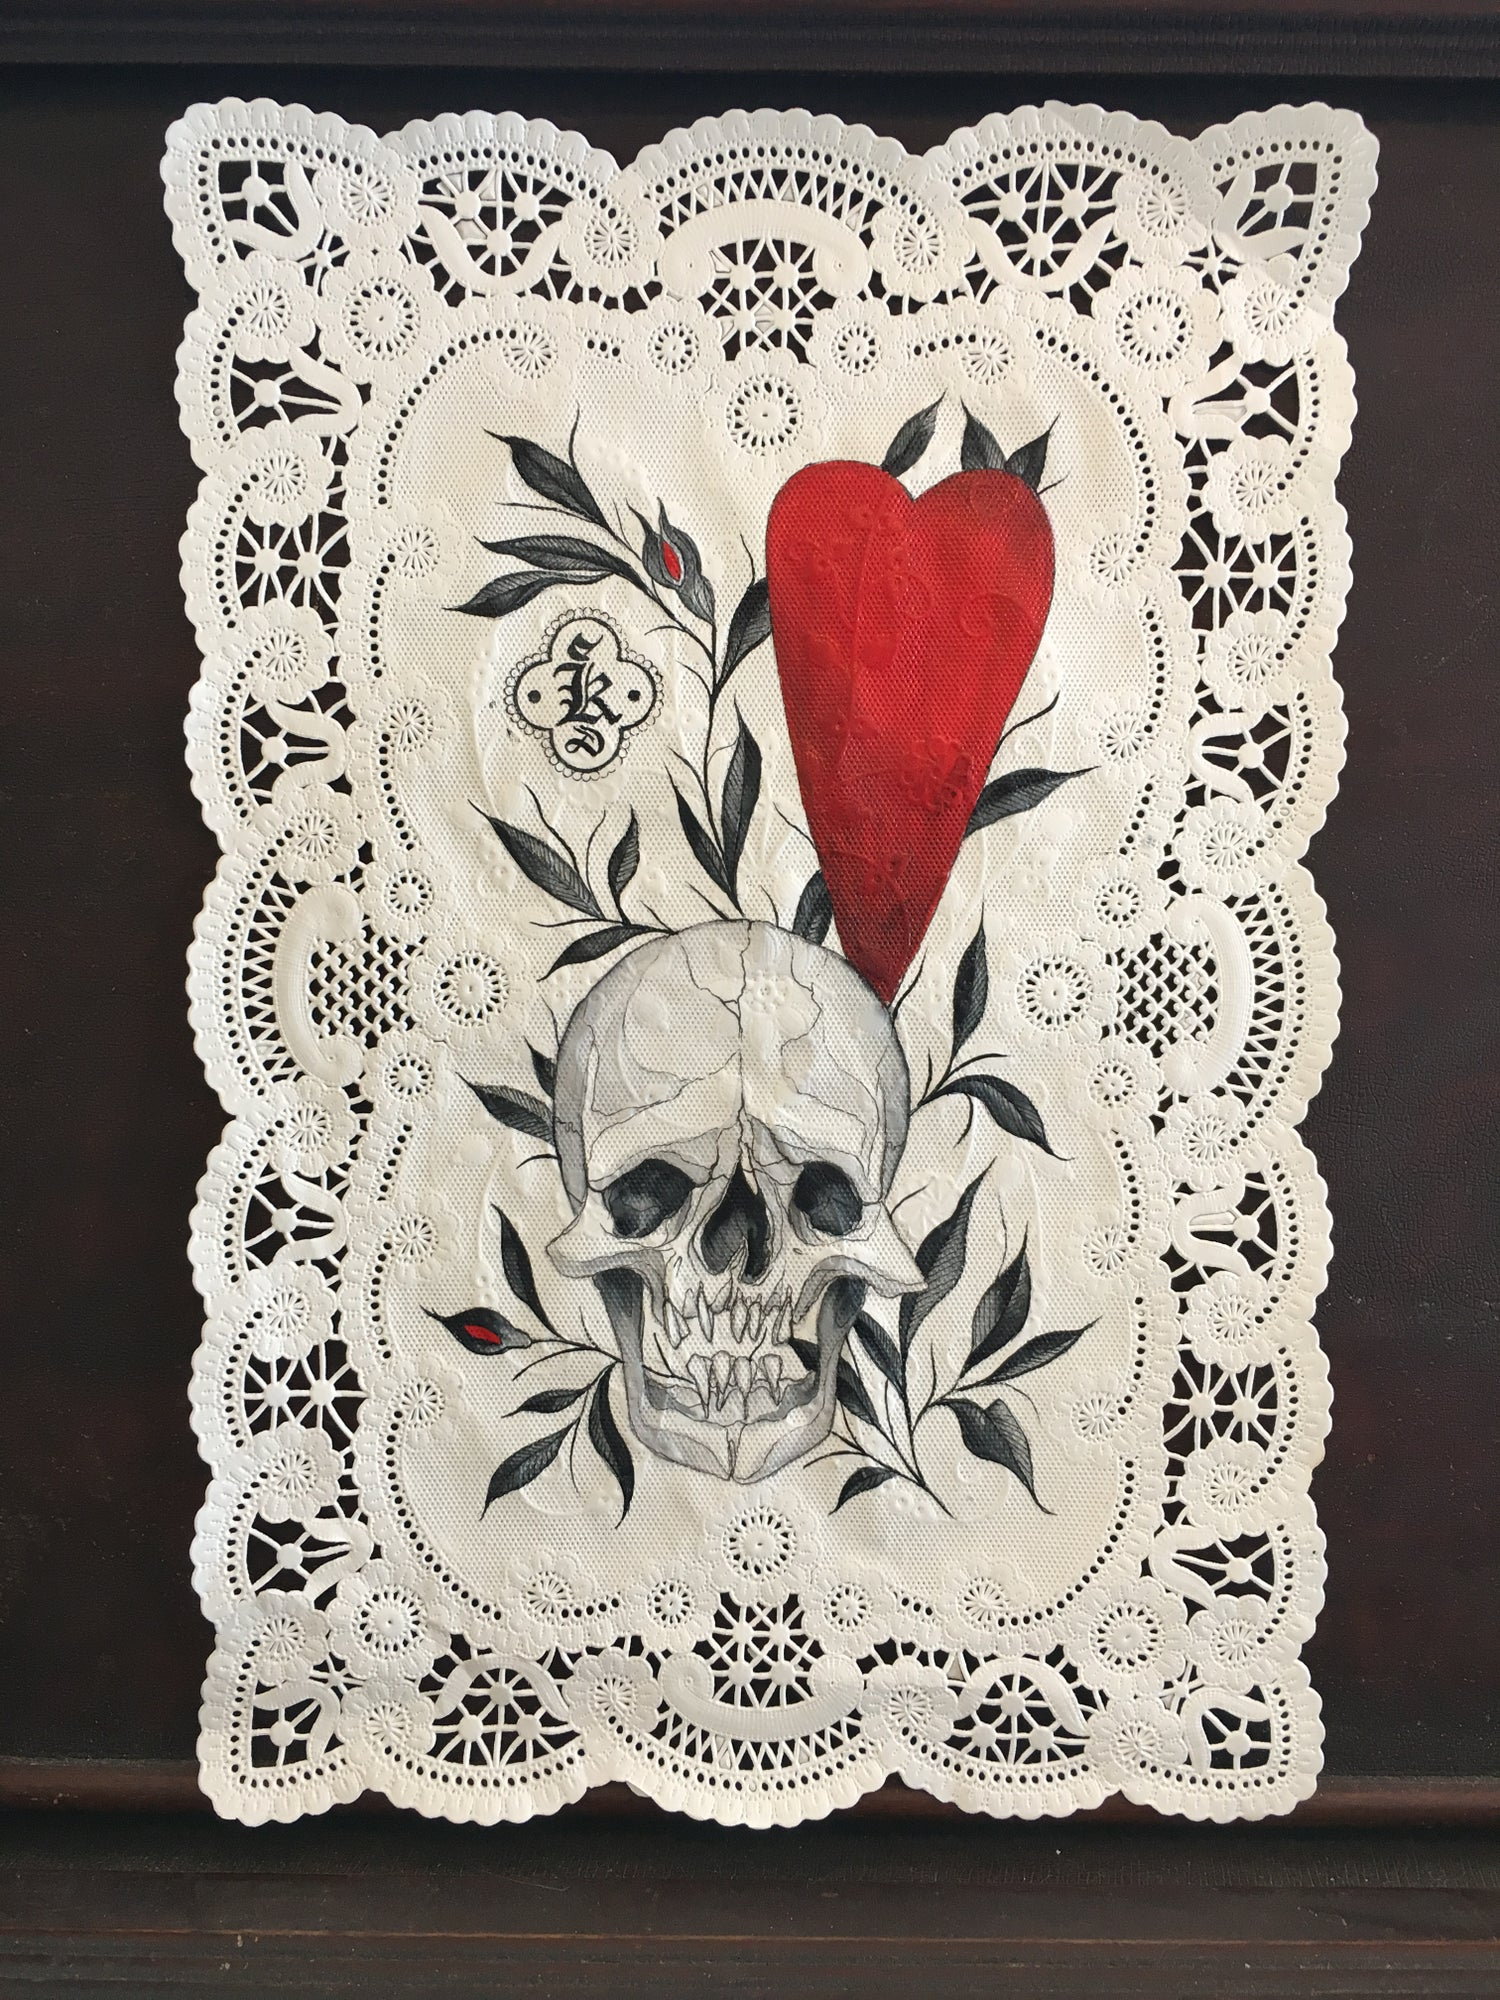 Image of Skull and Heart Vintage Doily Painting